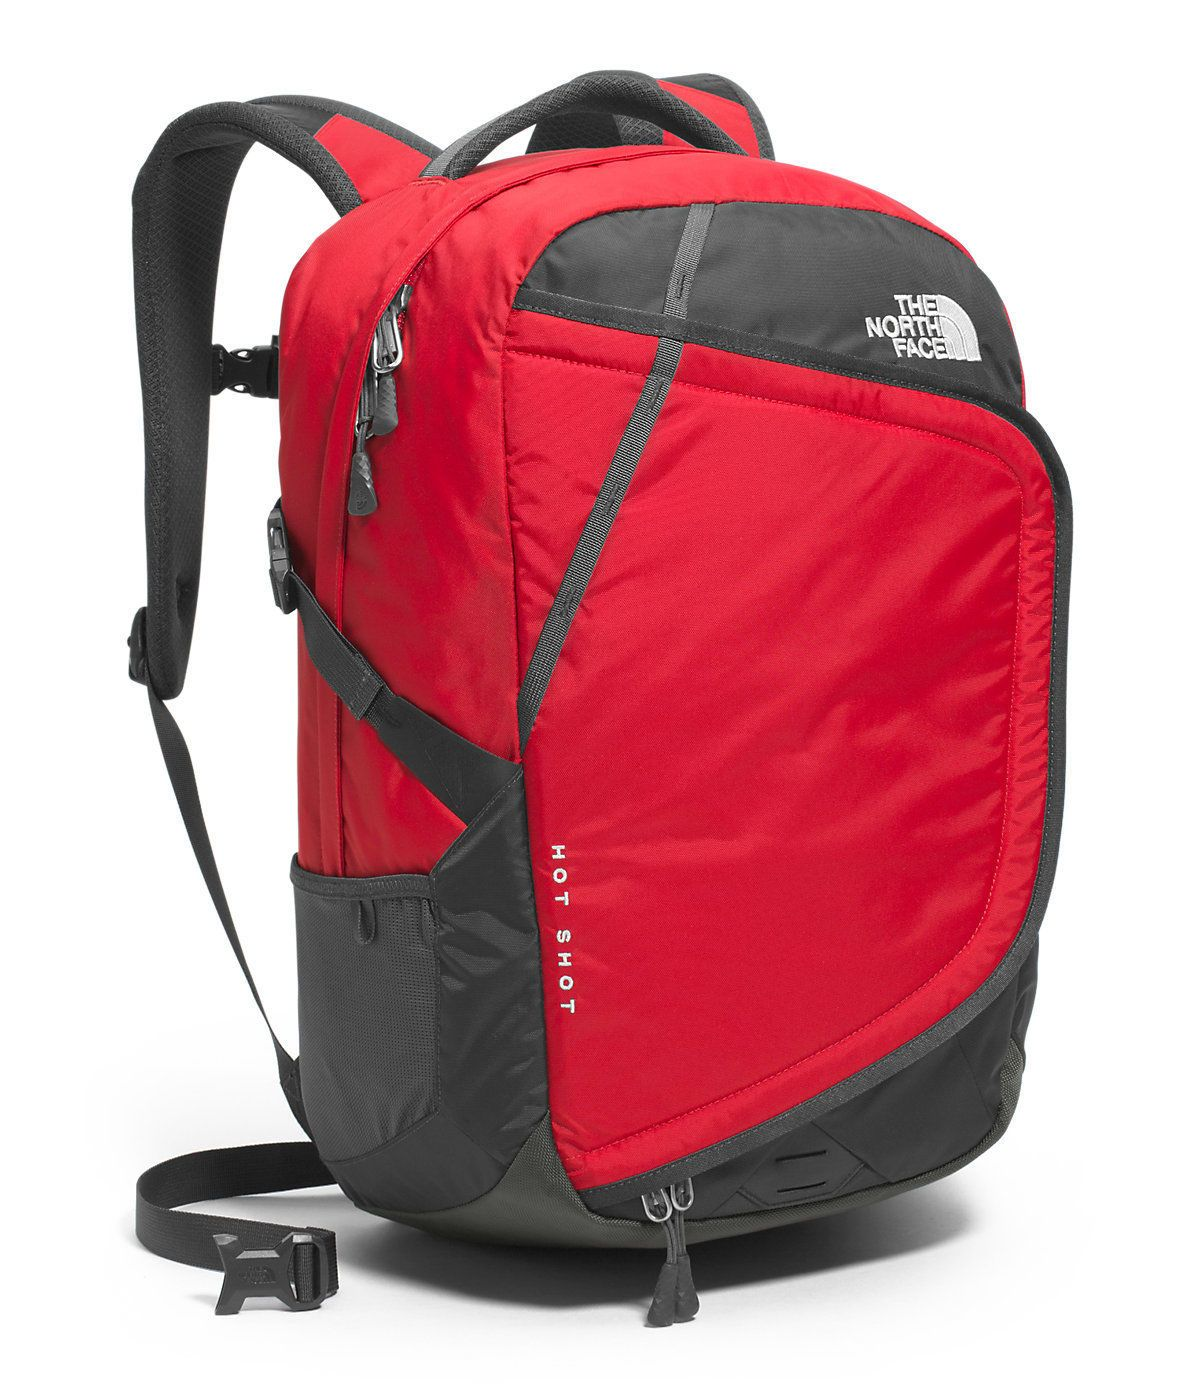 594268e27 Details about The North Face Surge II. Router Transit, Hot Shot ...